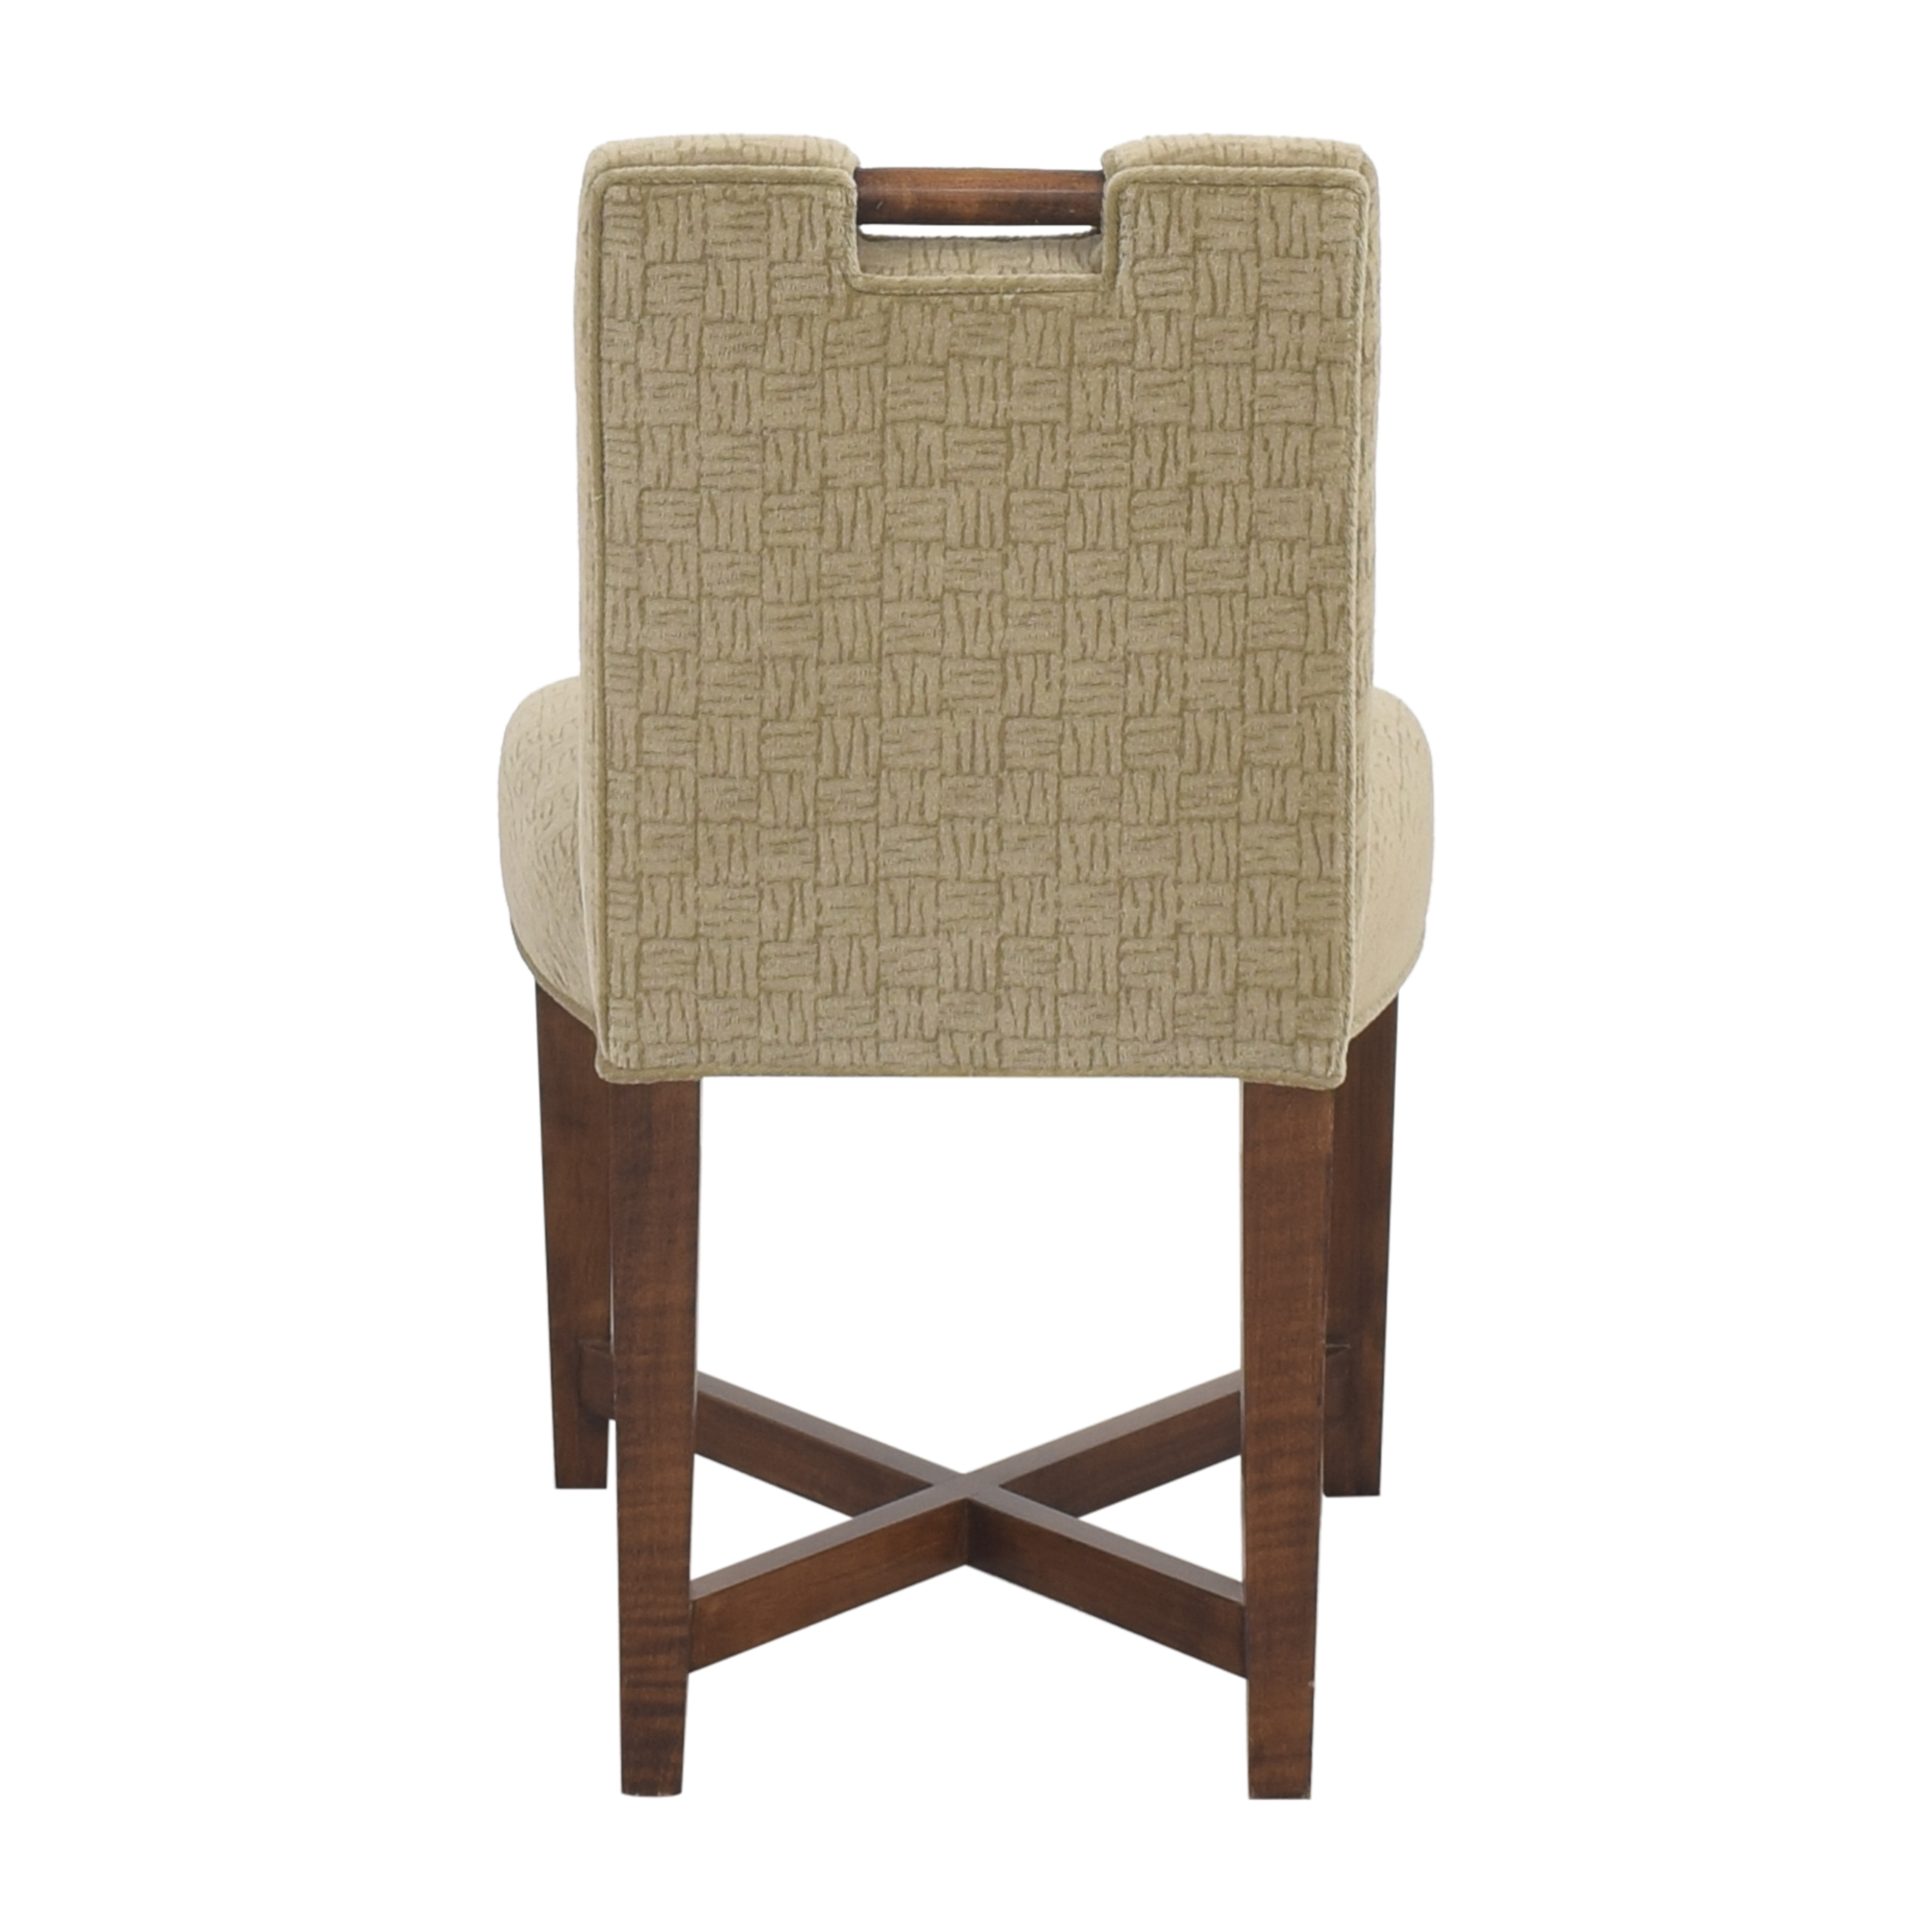 buy Donghia Custom Upholstered Chair Donghia Dining Chairs